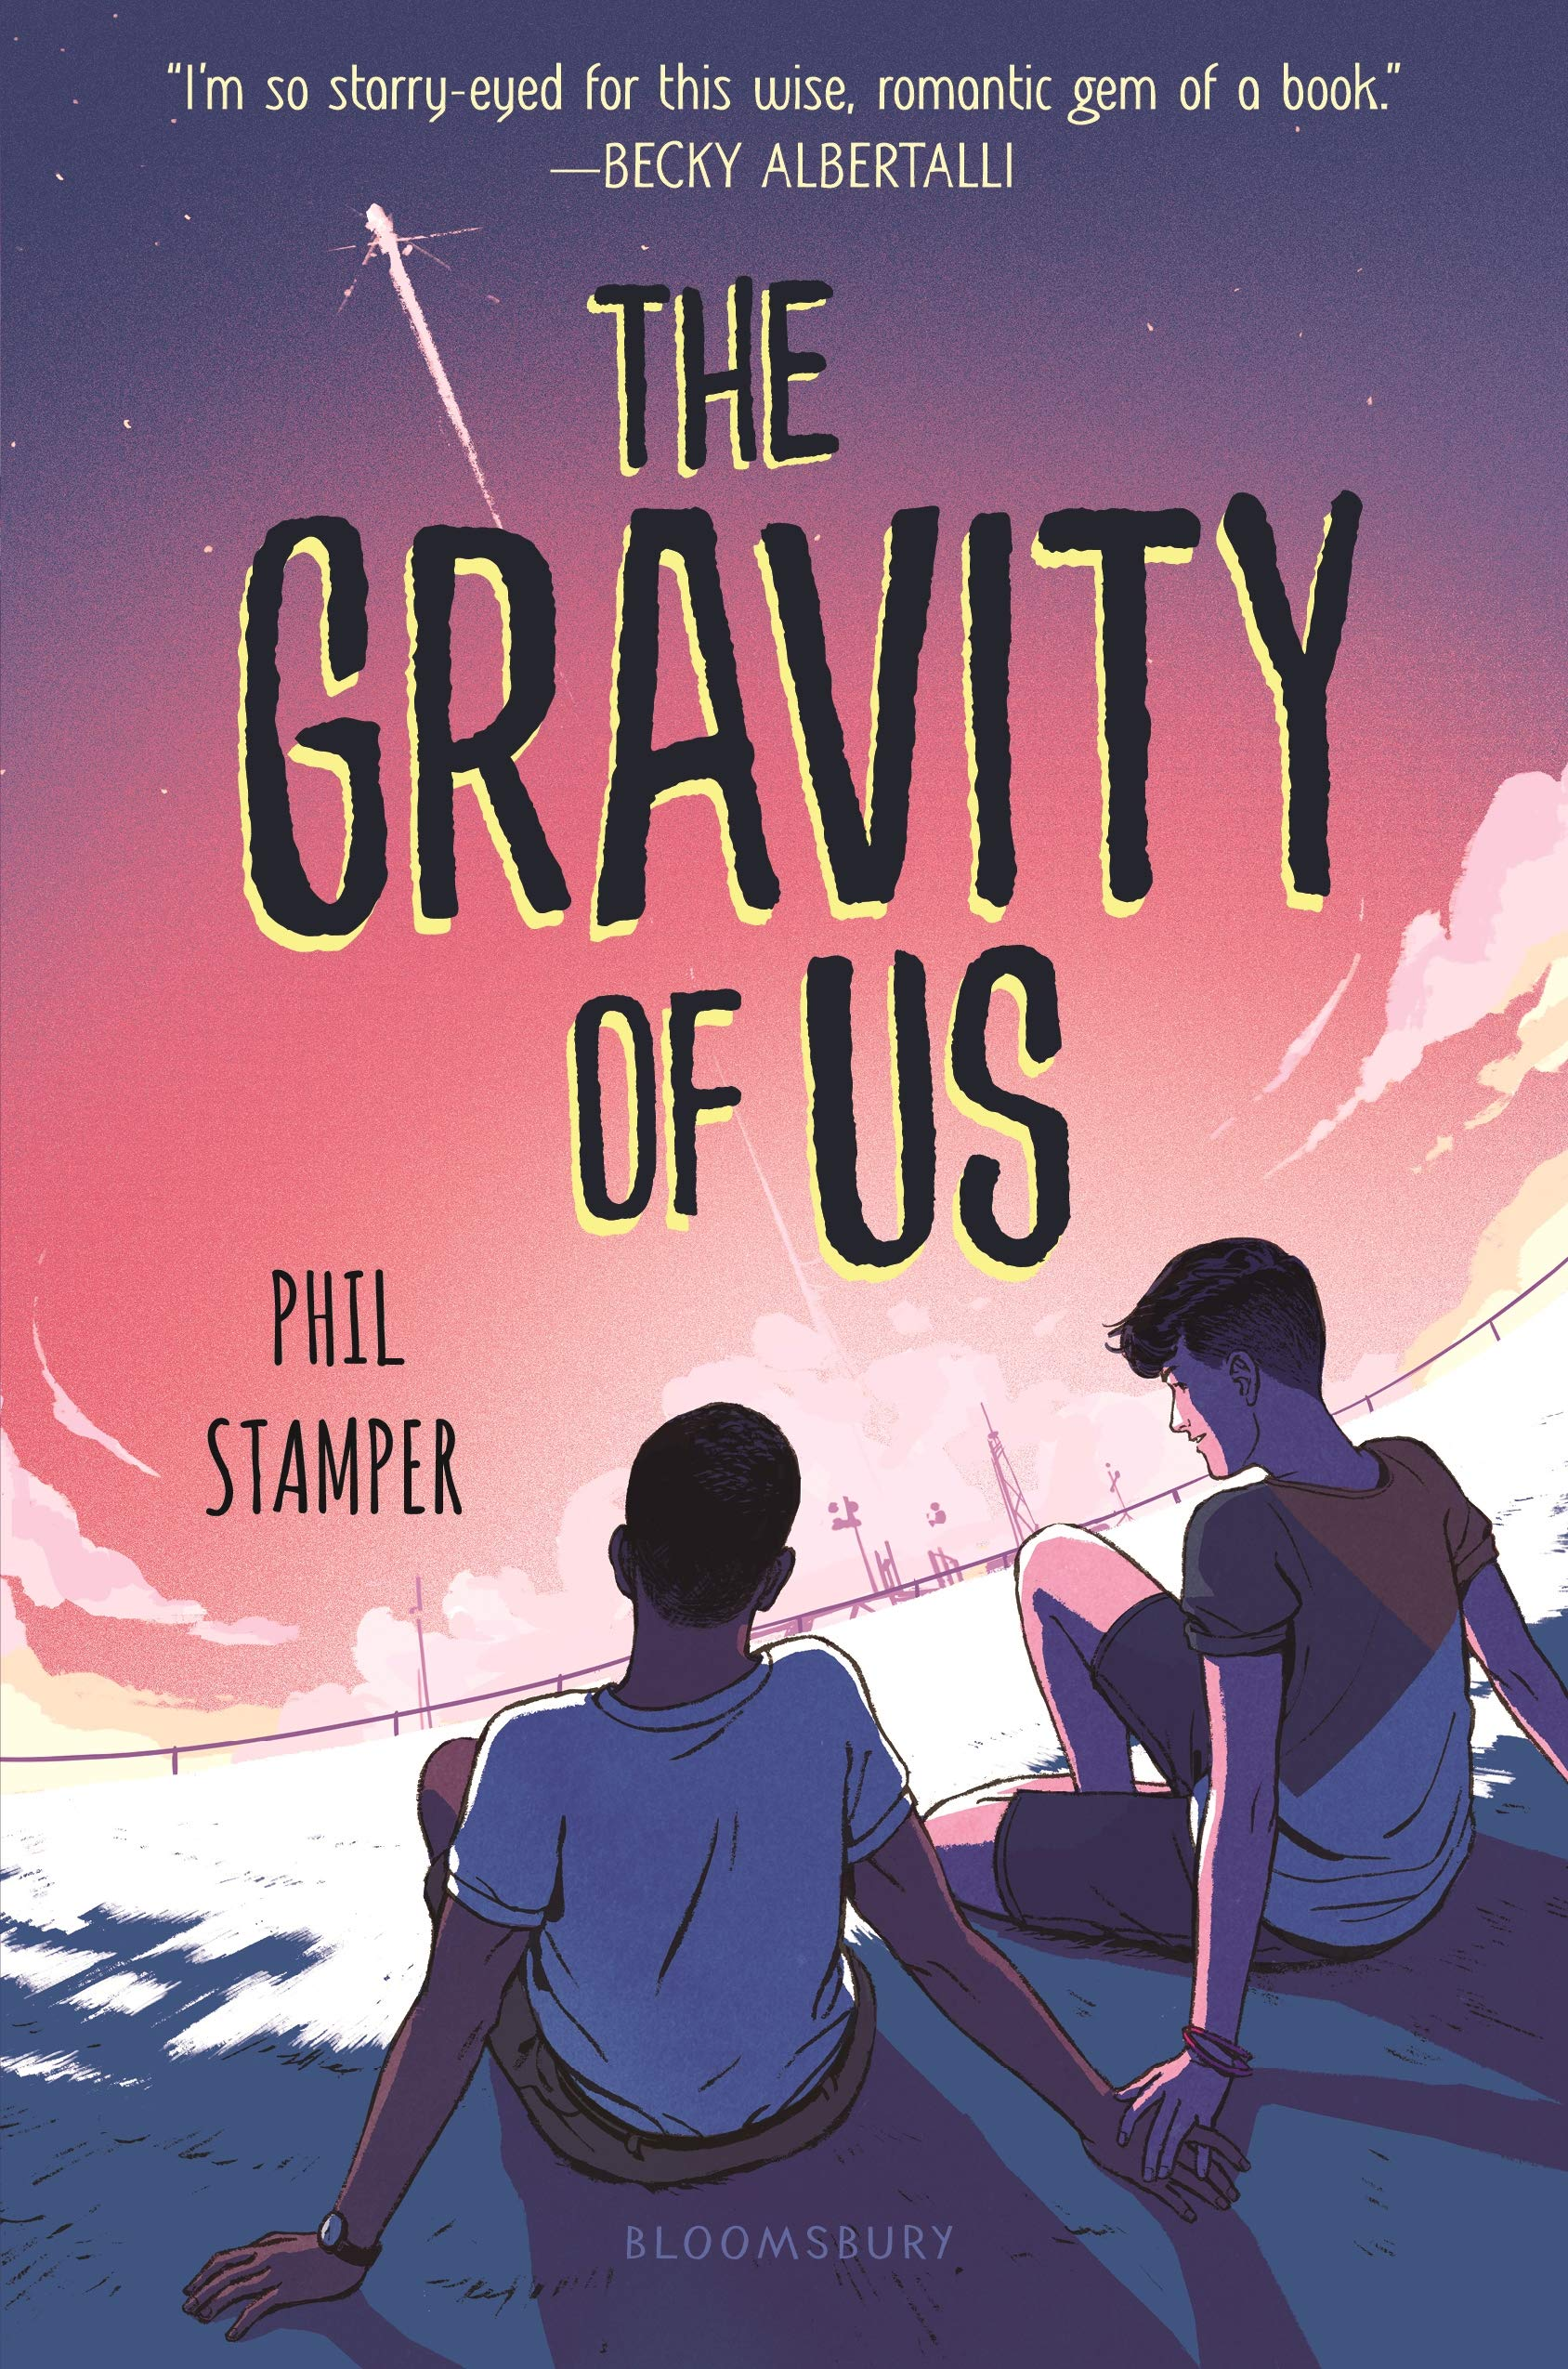 Amazon.com: The Gravity of Us (9781547600144): Stamper, Phil: Books